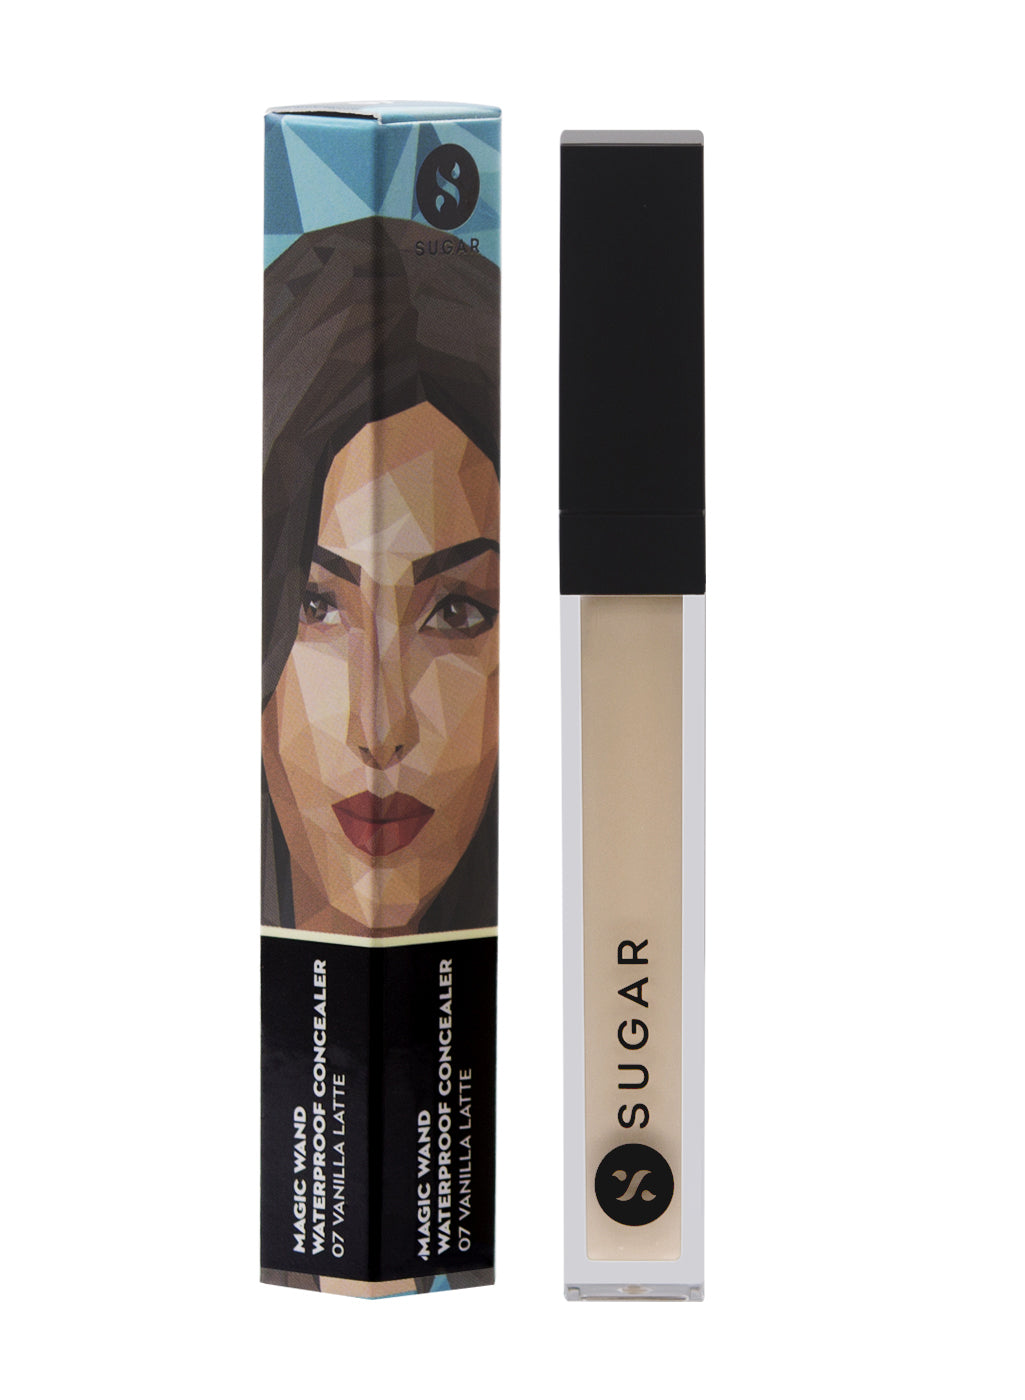 SUGAR Magic Wand Waterproof Concealer - 07 Vanilla Latte (Fair, Golden Undertone)